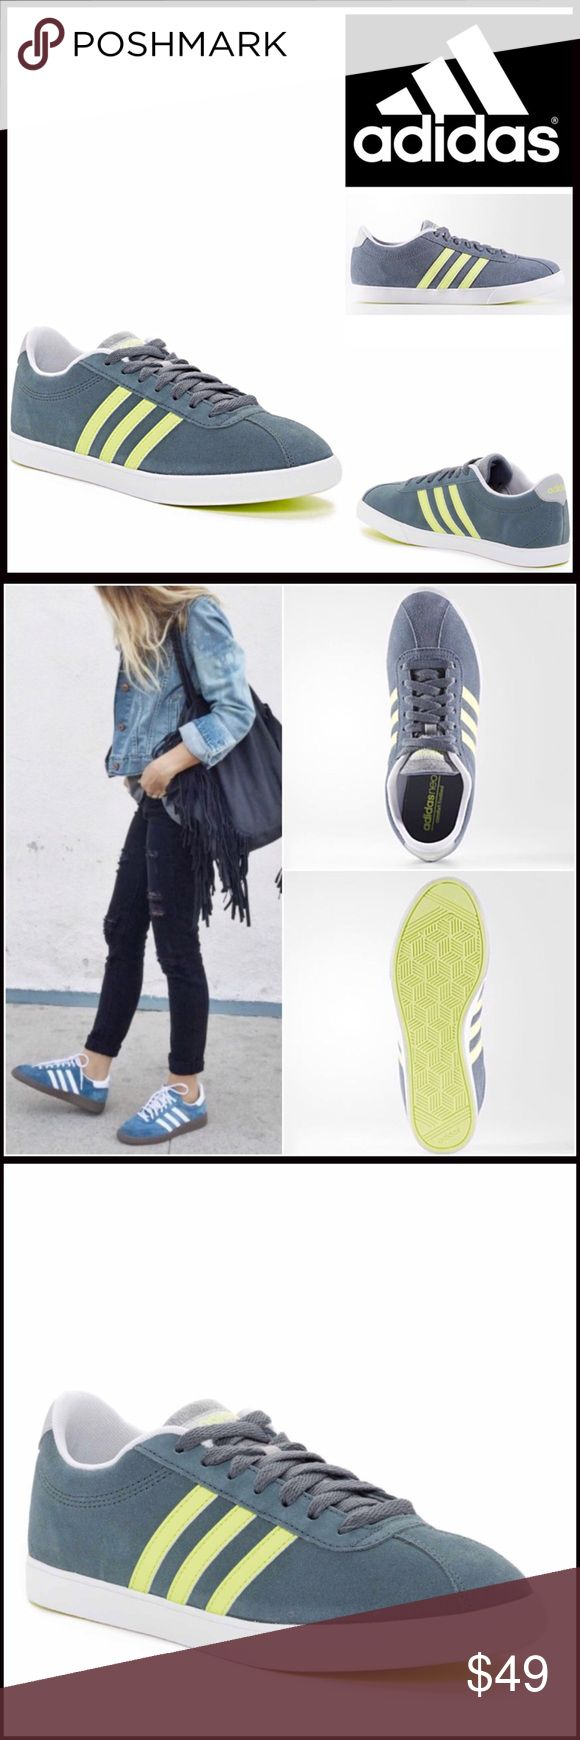 Adidas SNEAKERS Stylish Women's Sneakers NEW WITH TAGS  Adidas Stylish Women's Sneakers    * Round toe & lace up vamp  * A contrasting ballet flat sneaker sole   * Side contrasting signature super star stripes   * Low profile style  * Non-marking sole & cushioned insole  * True to size   Material: Leather upper & a rubber sole Color: Lead Item#AD9  No Trades ✅ Offers Considered*✅ *Please use the blue 'offer' button to submit an offer adidas Shoes Sneakers